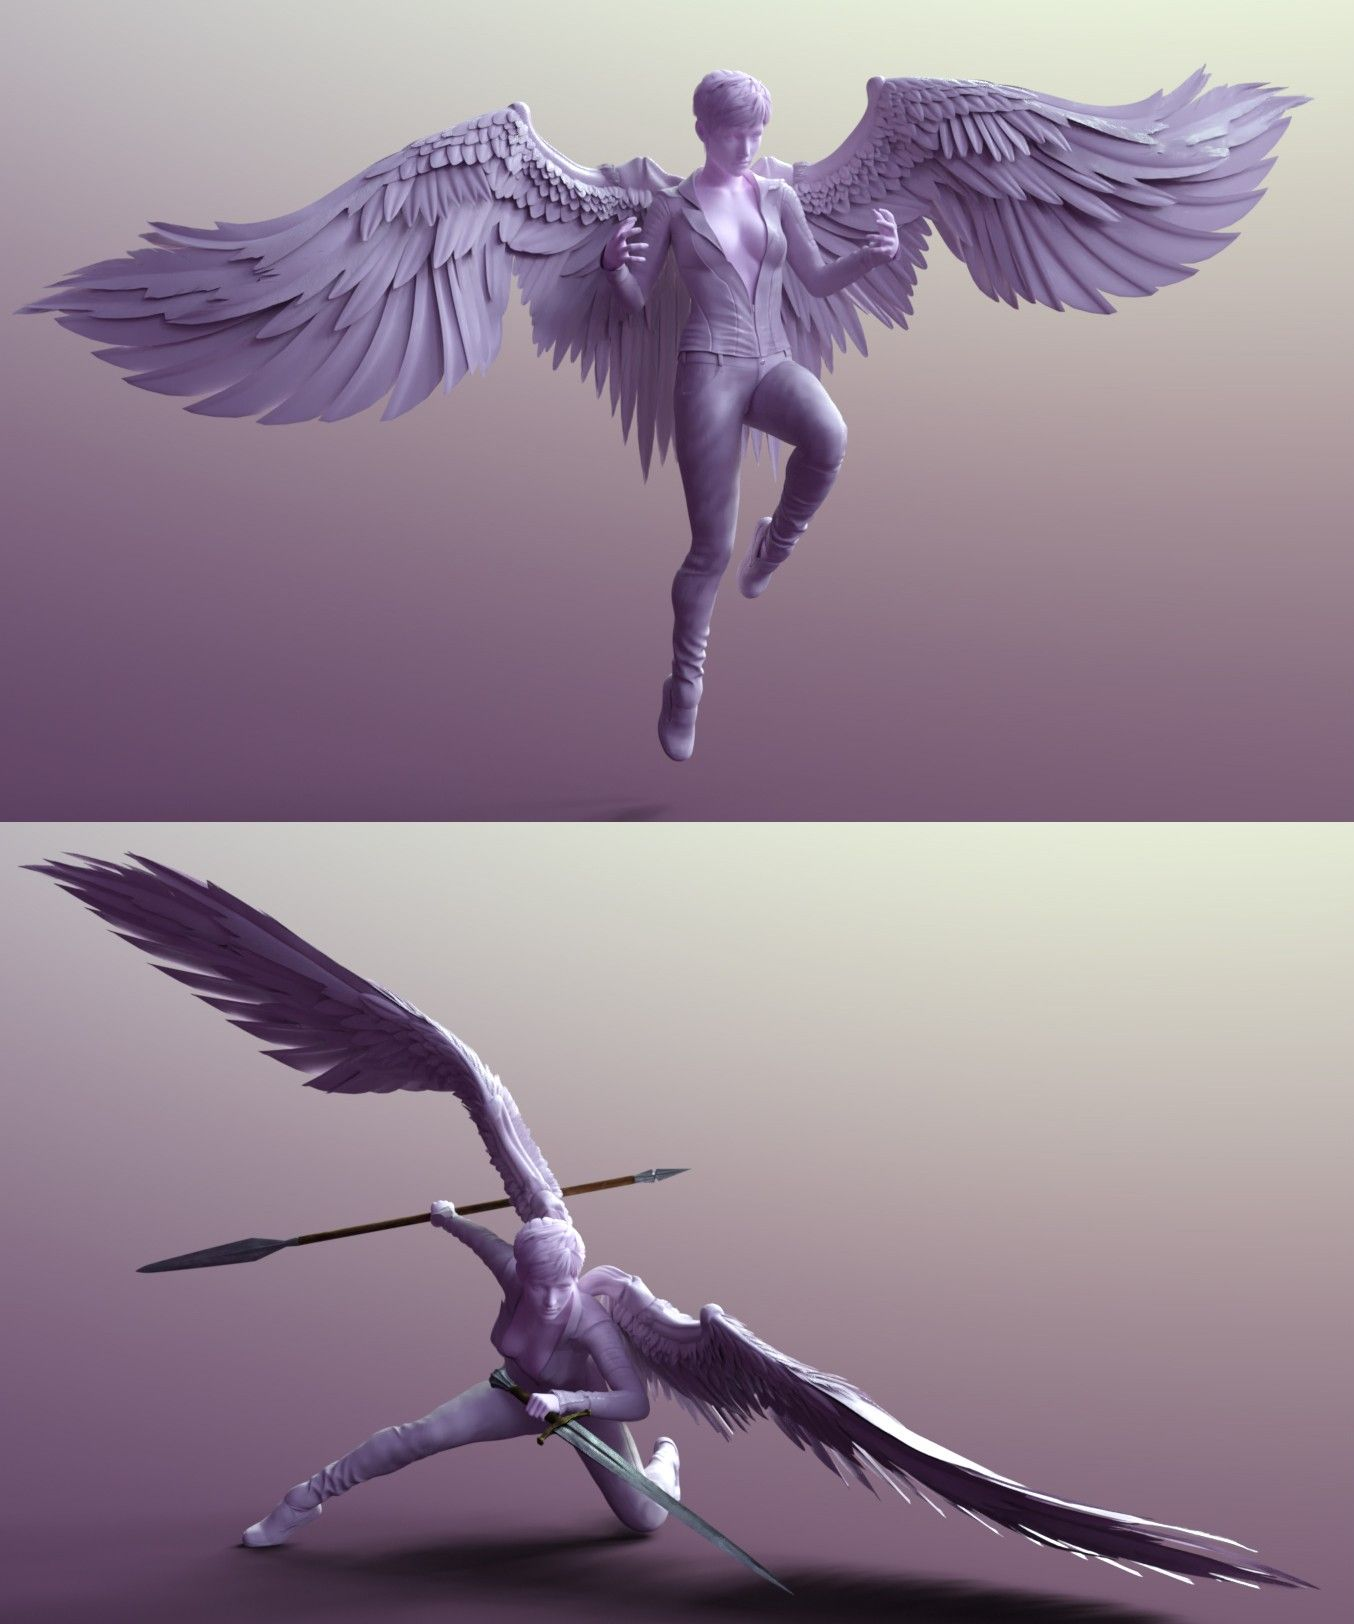 Sacrosanct Poses And Expressions For Genesis 8 And Morningstar Wings 3d Models And 3d Software By In 2020 Wings Drawing Art Reference Poses Drawing Reference Poses